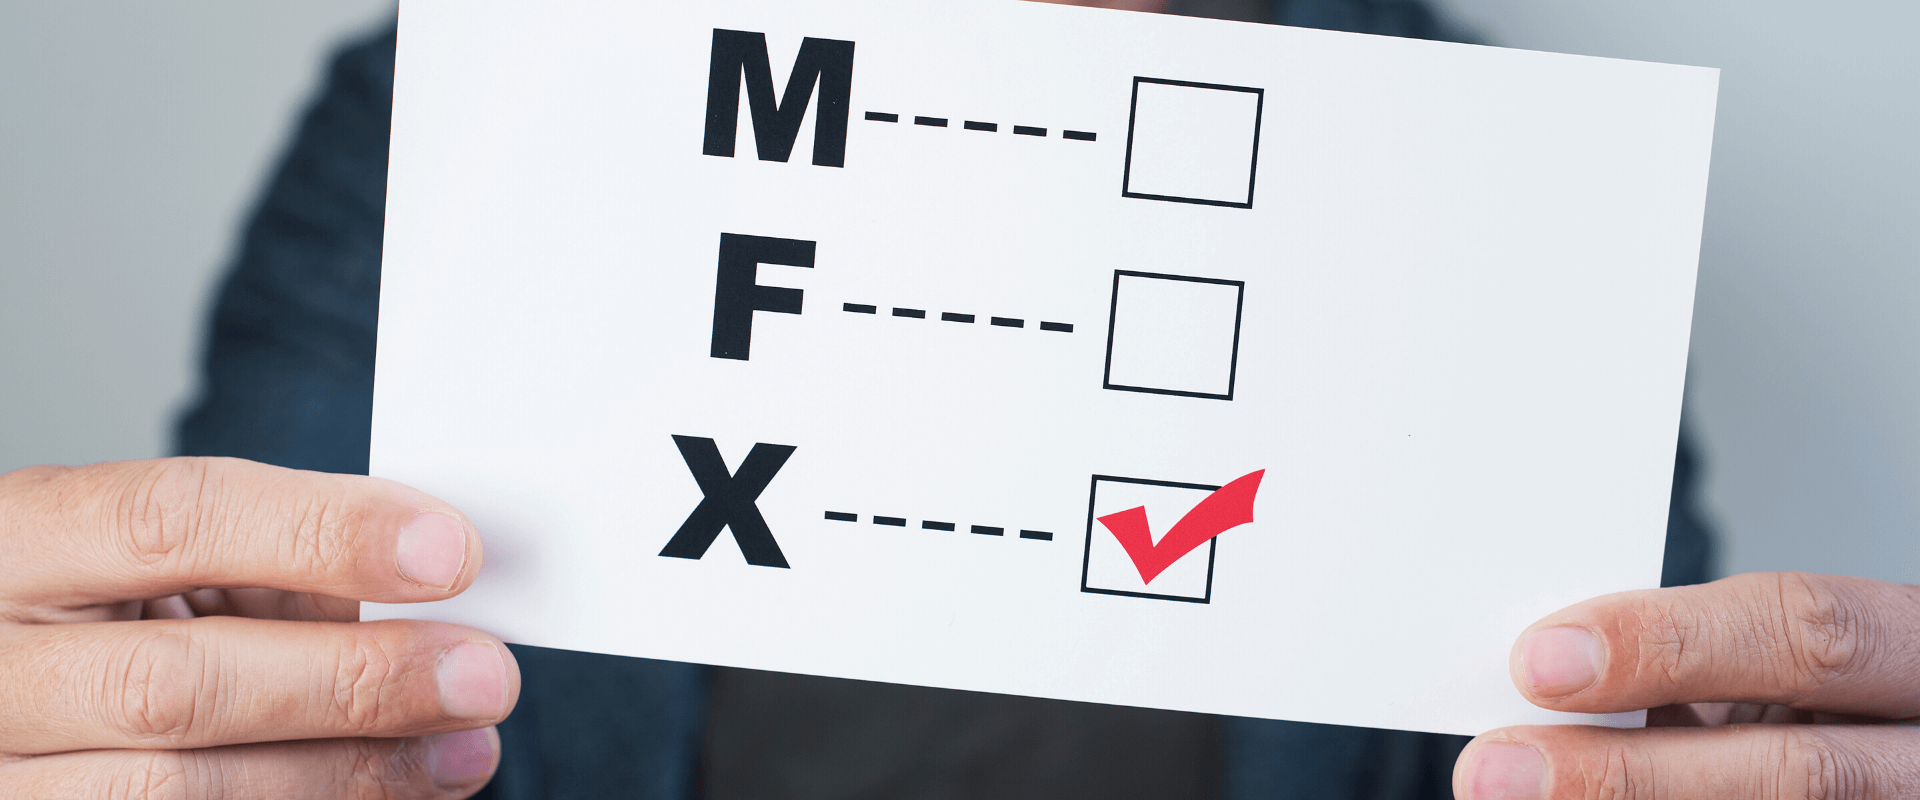 Person holding a sign with options M, F and X. Option X is checked in red.